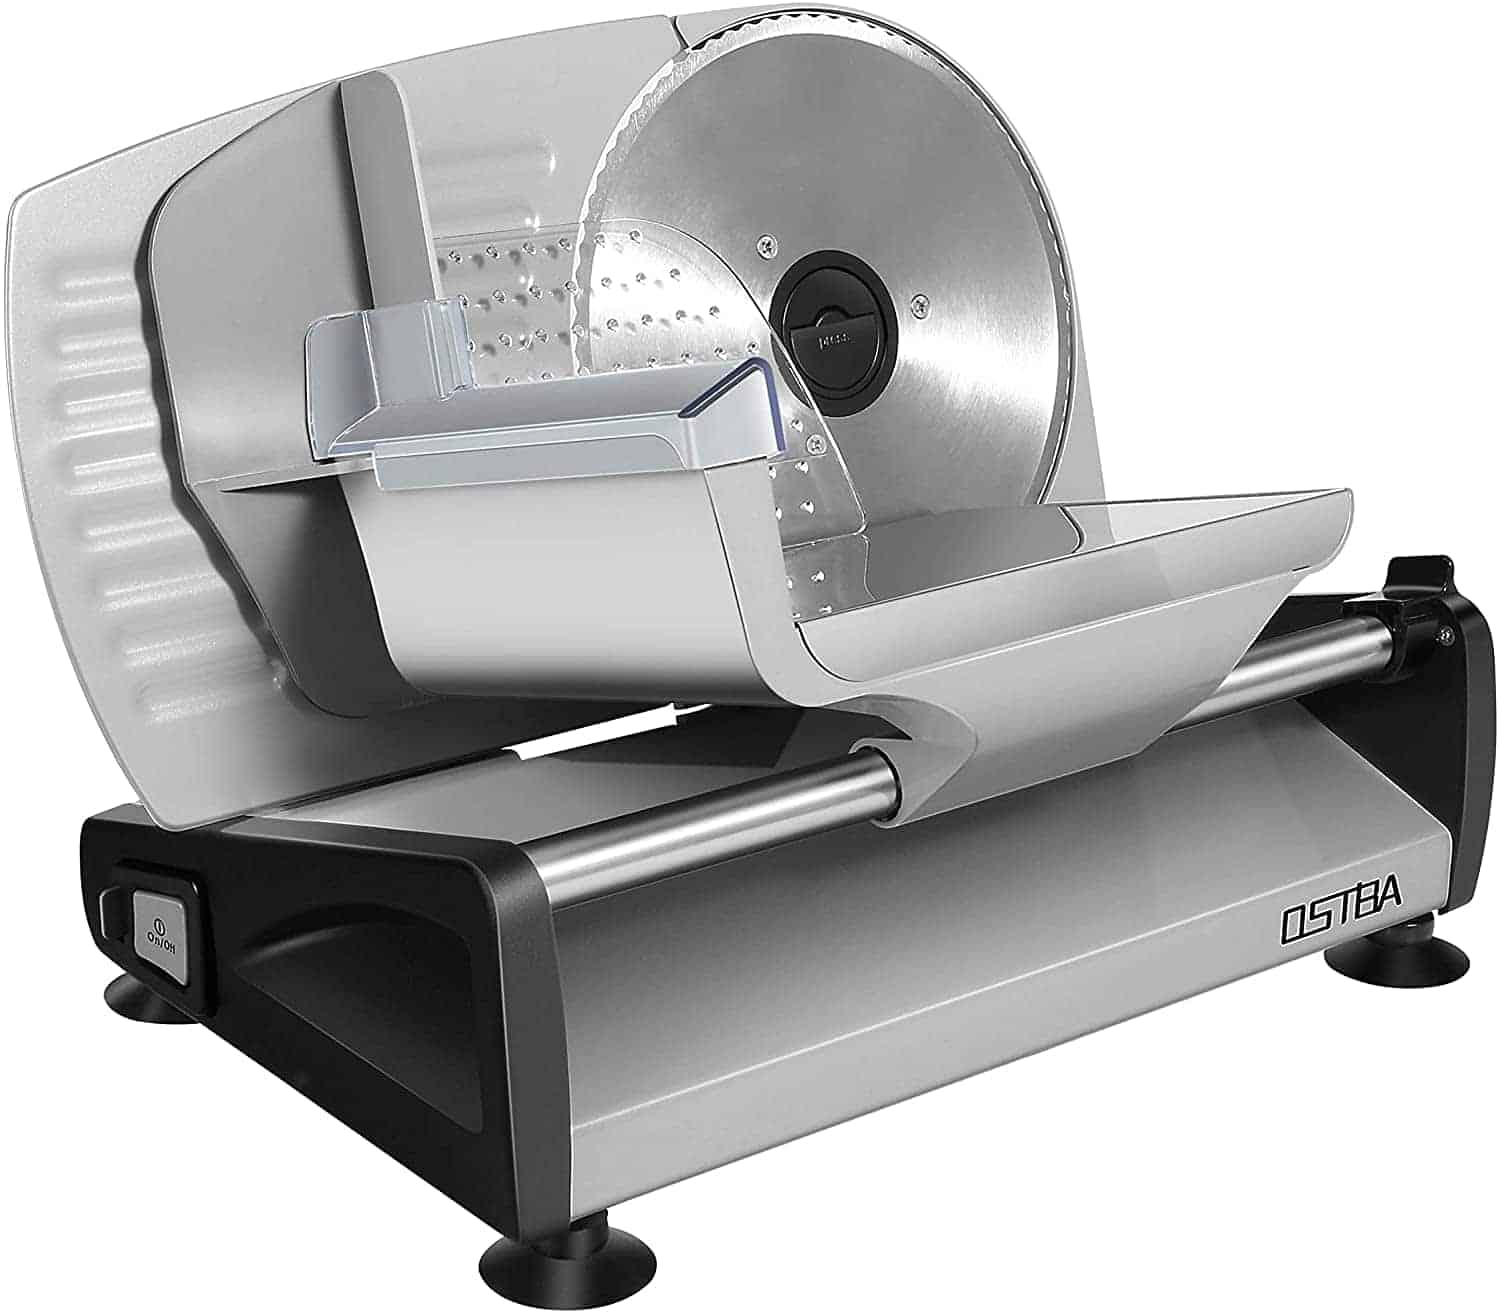 OSTBA Meat Slicer